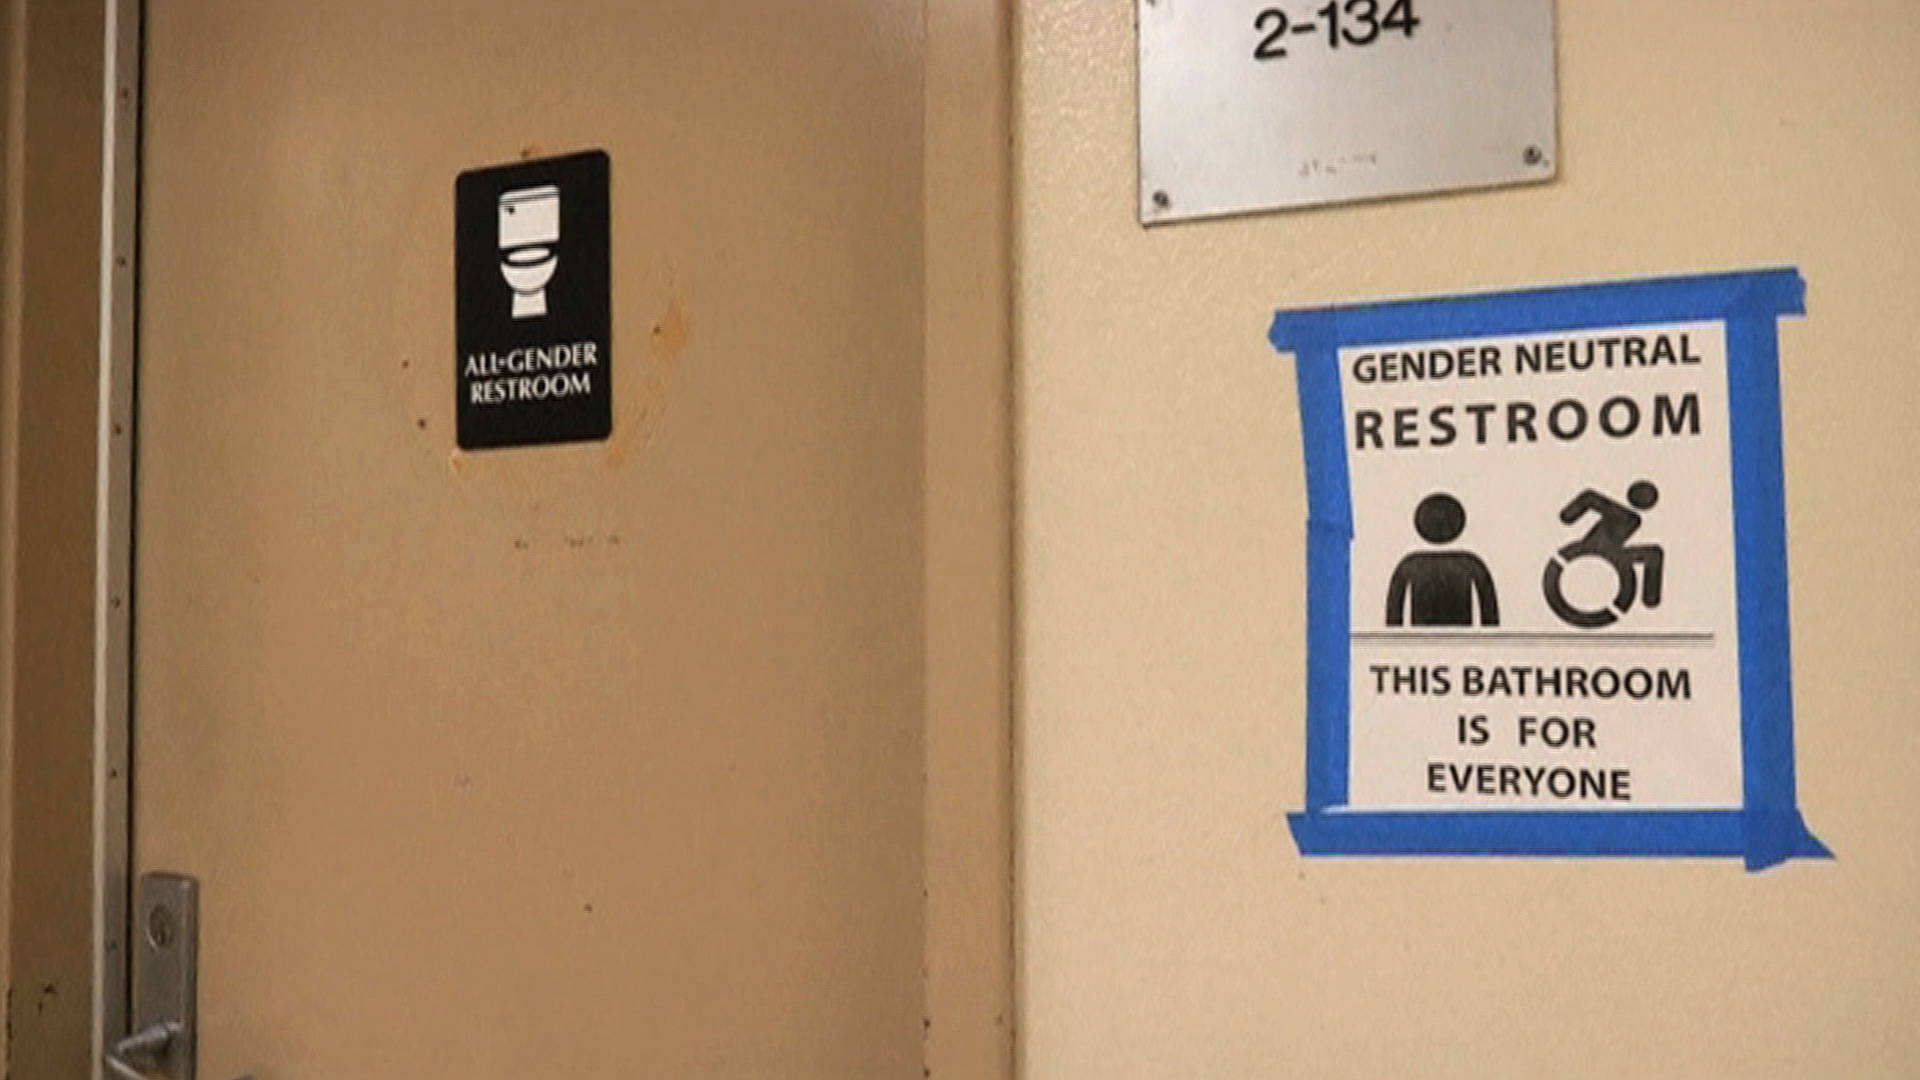 California lawmakers advance bill for gender neutral restrooms democracy now for Transgender bathroom laws by state